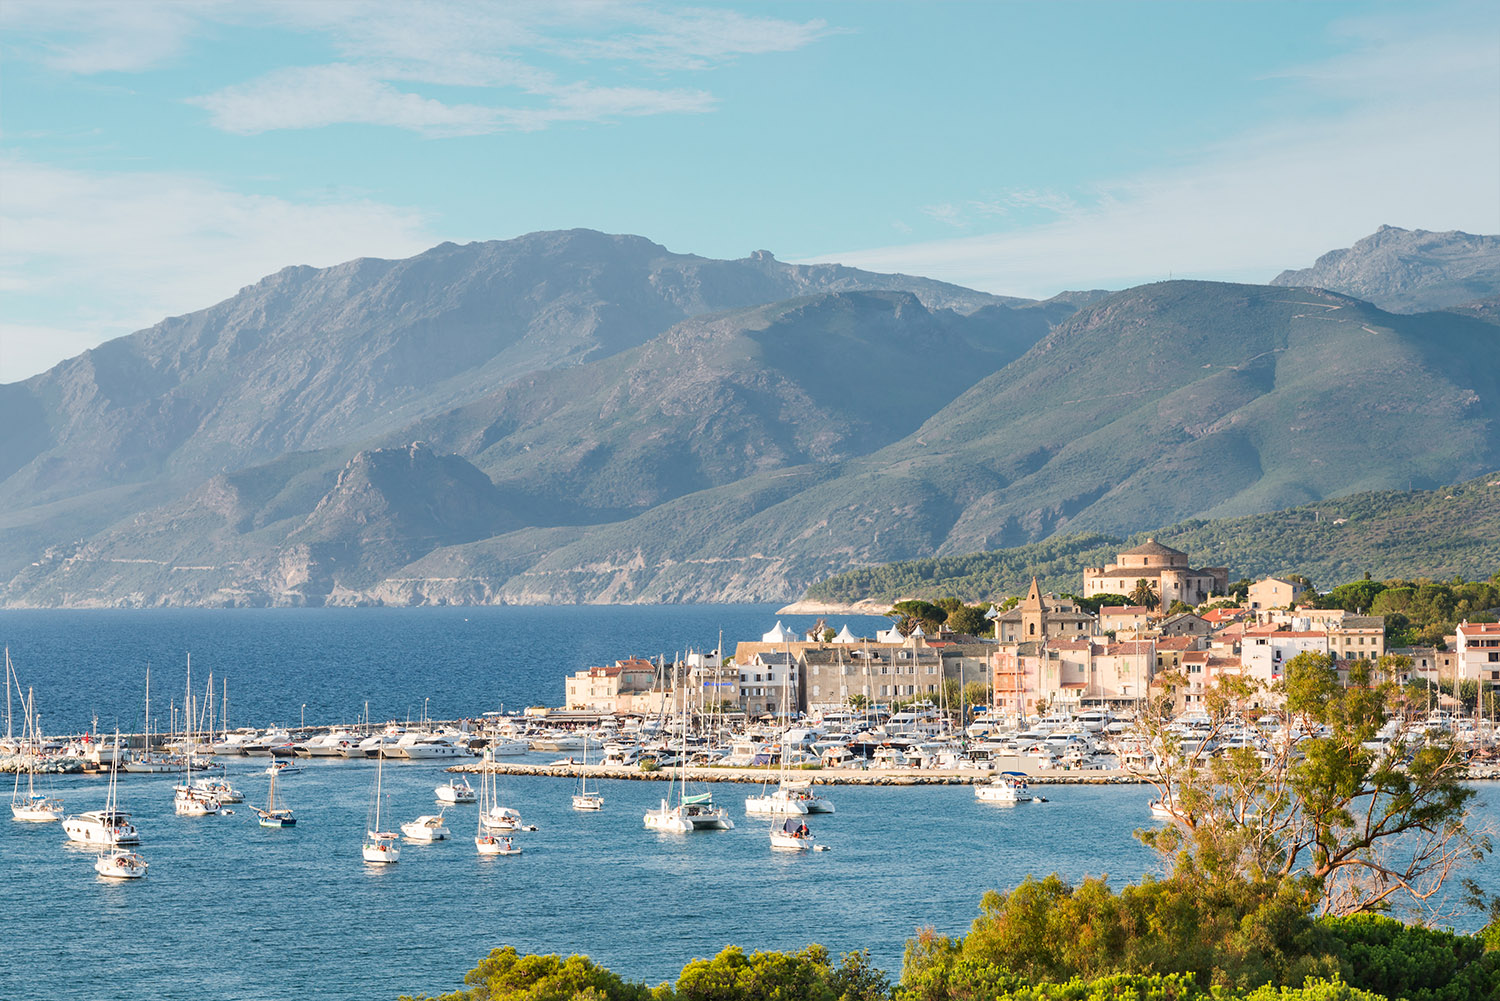 Panorama of the city of Saint-Florent, Corse